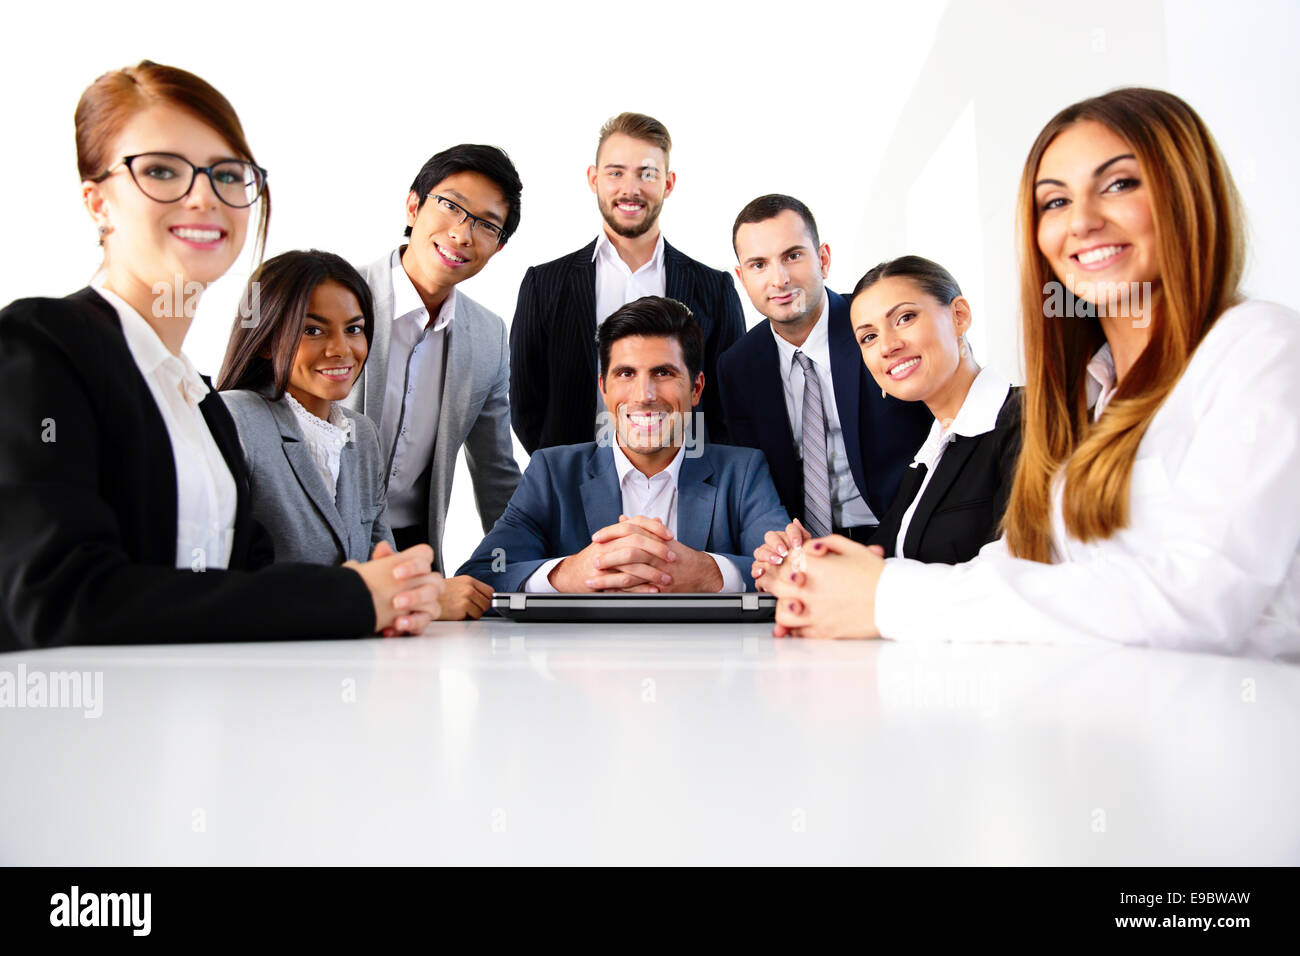 Un groupe de collègues de bureau en souriant Photo Stock